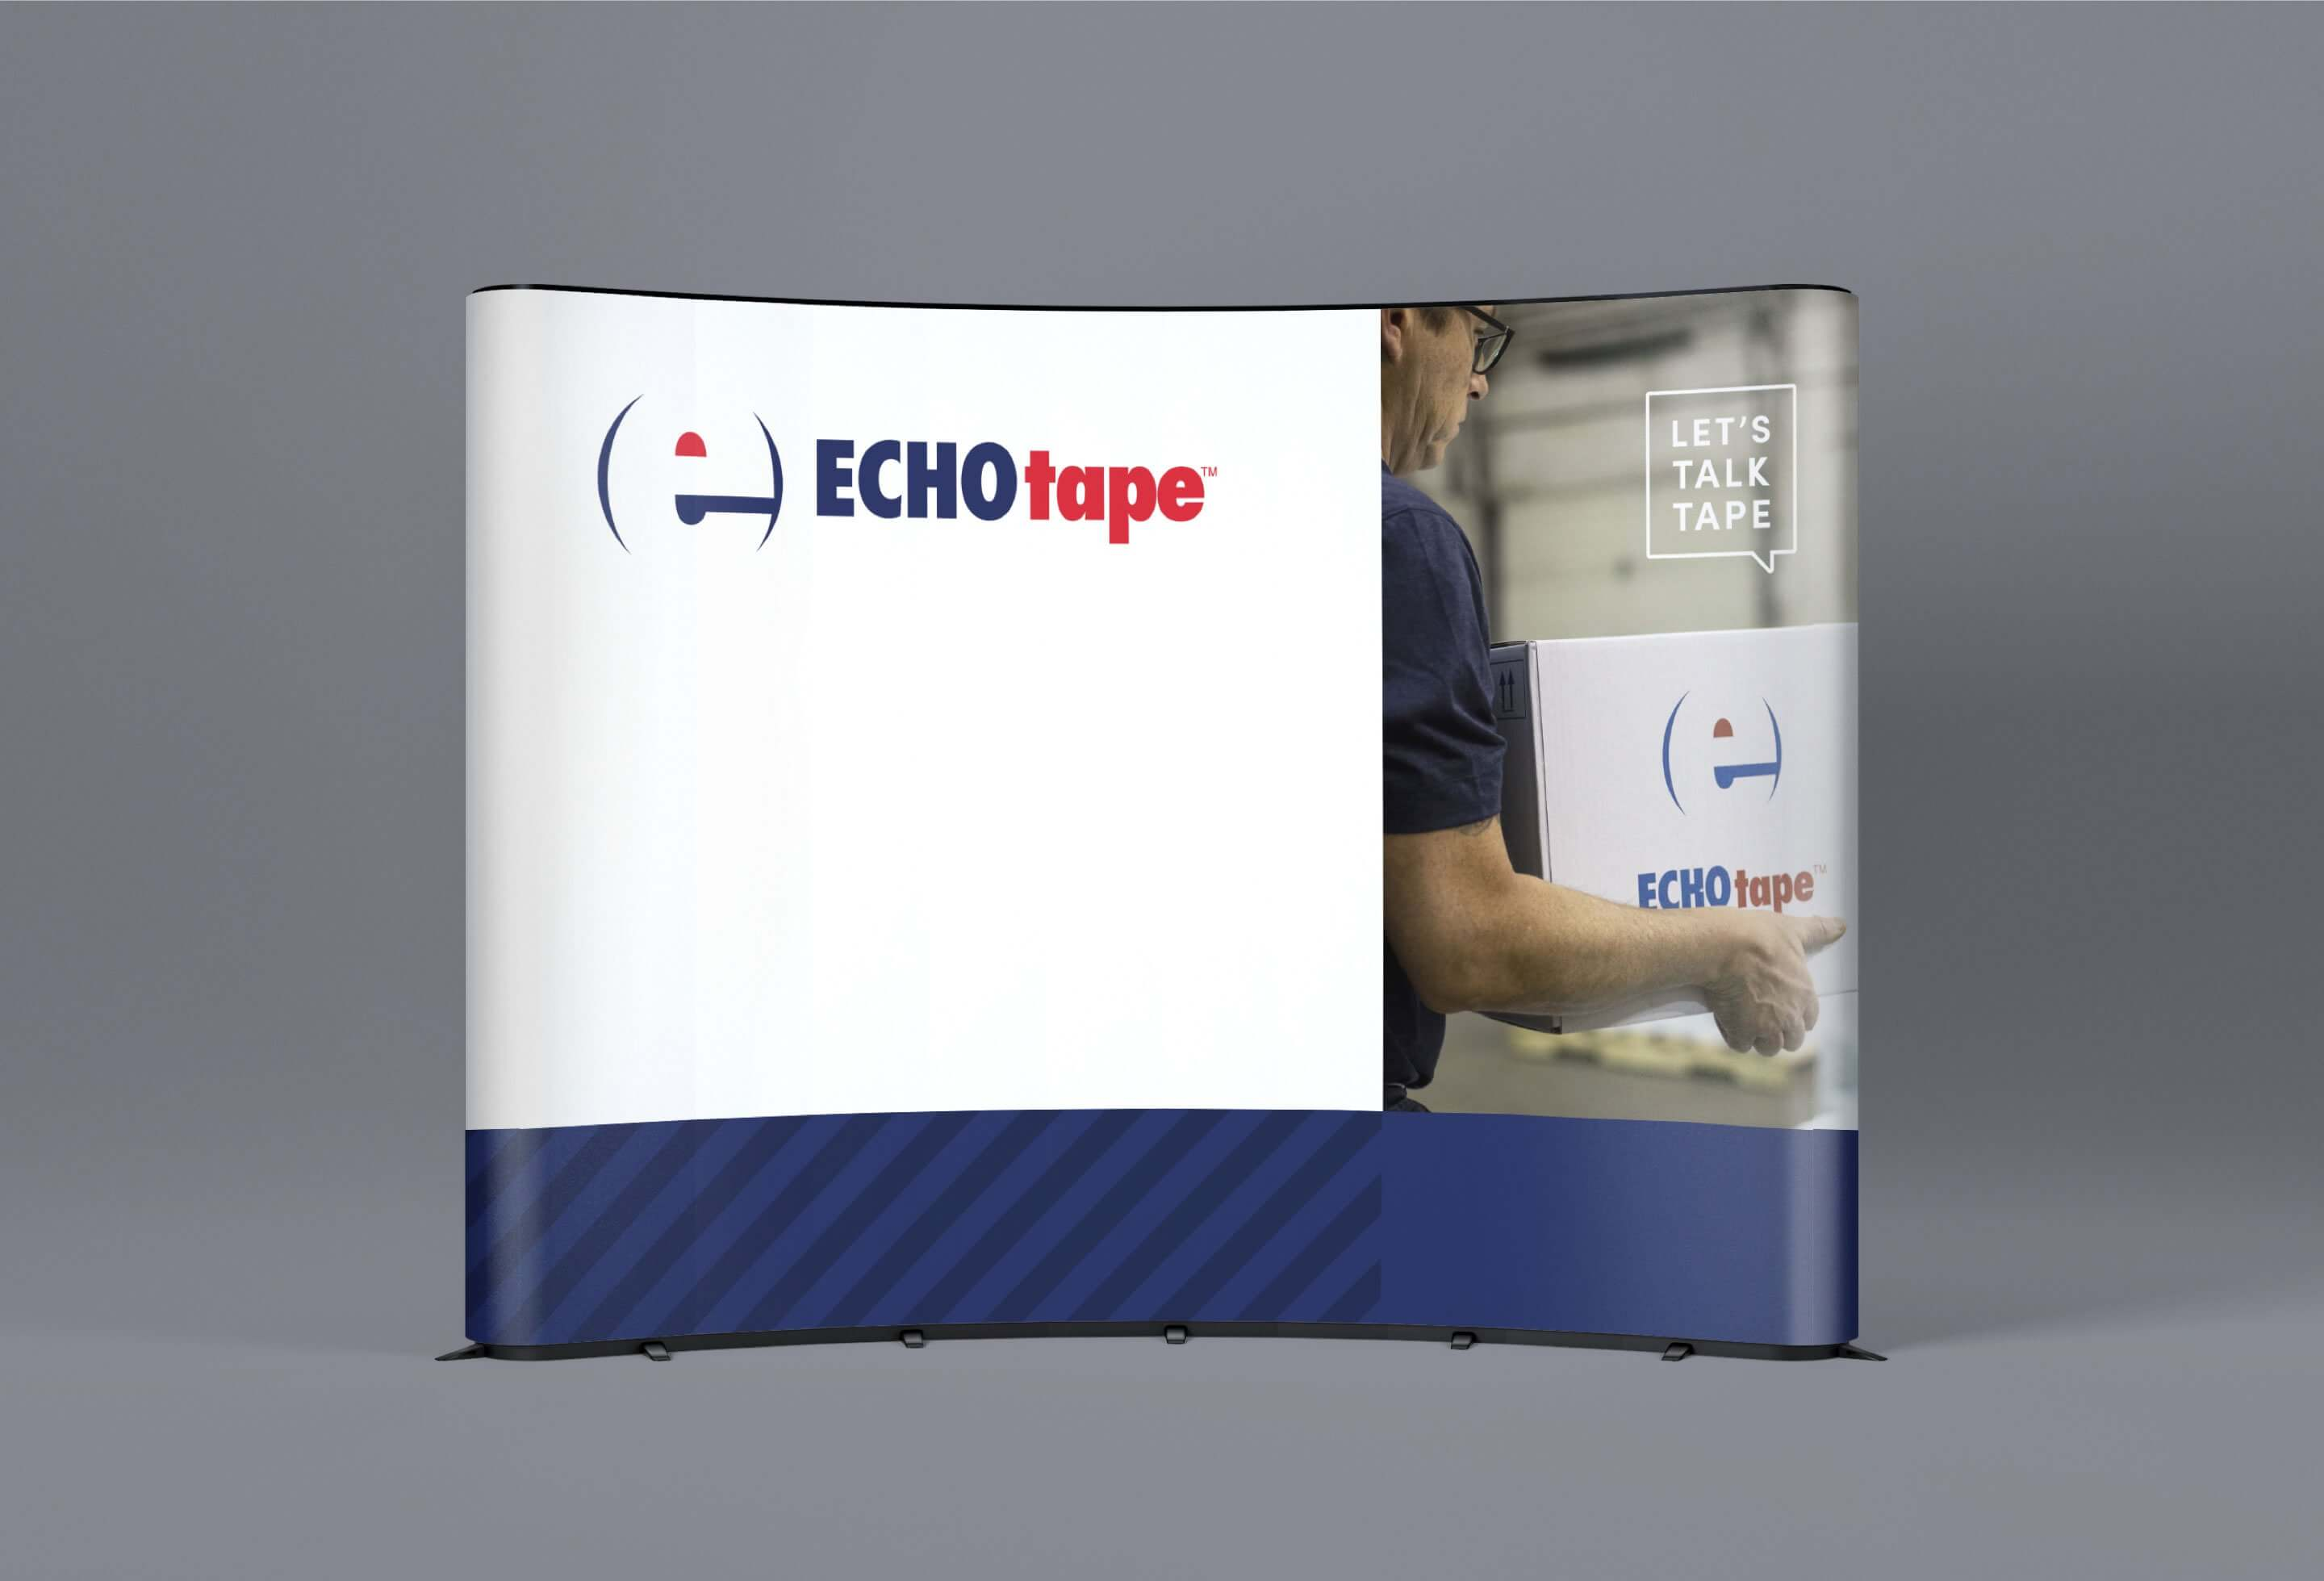 echotape tradeshow booth display